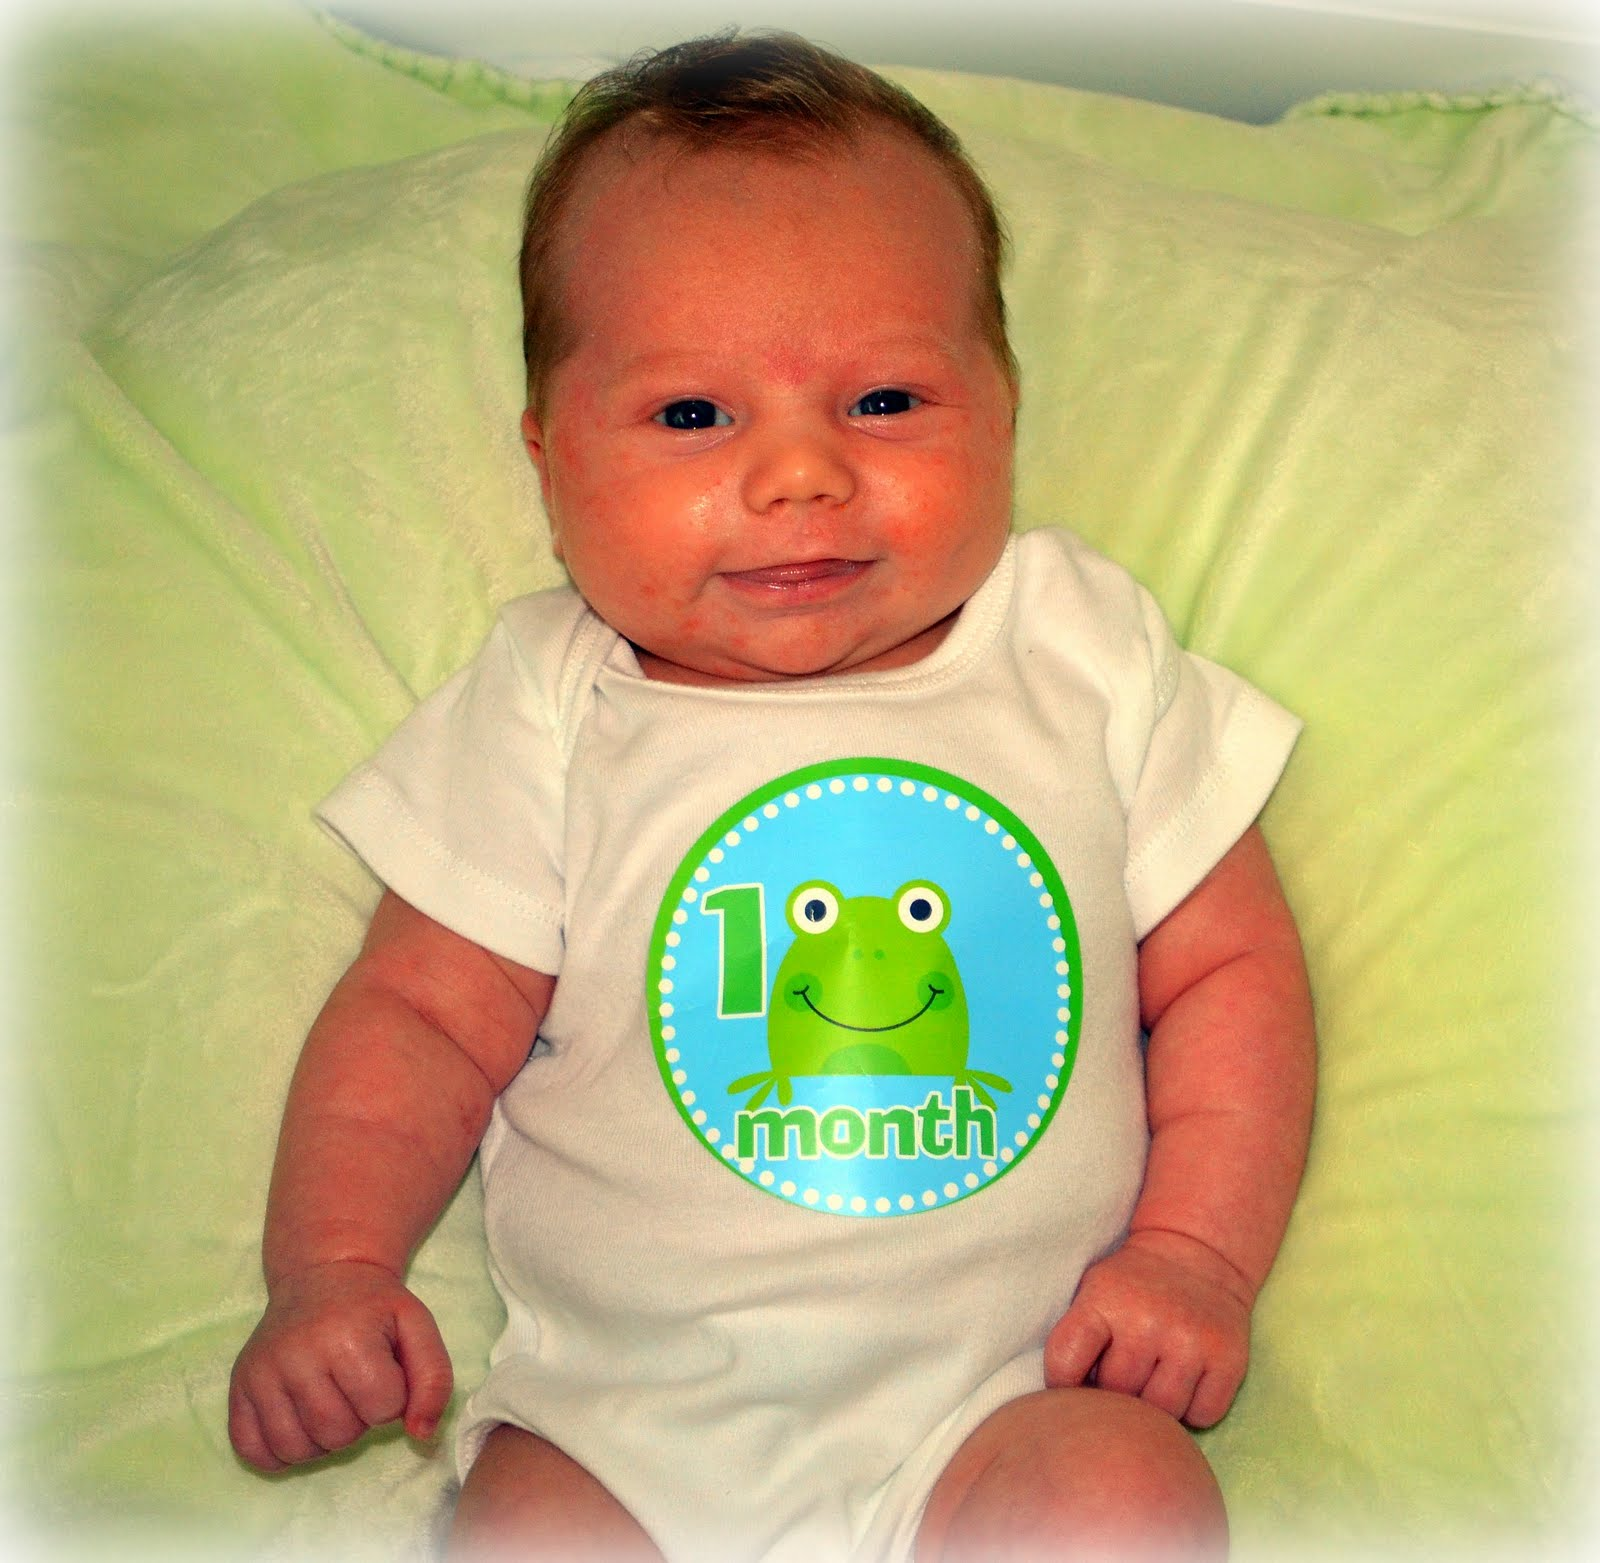 1 Month Old Baby Outfit The T Shirt